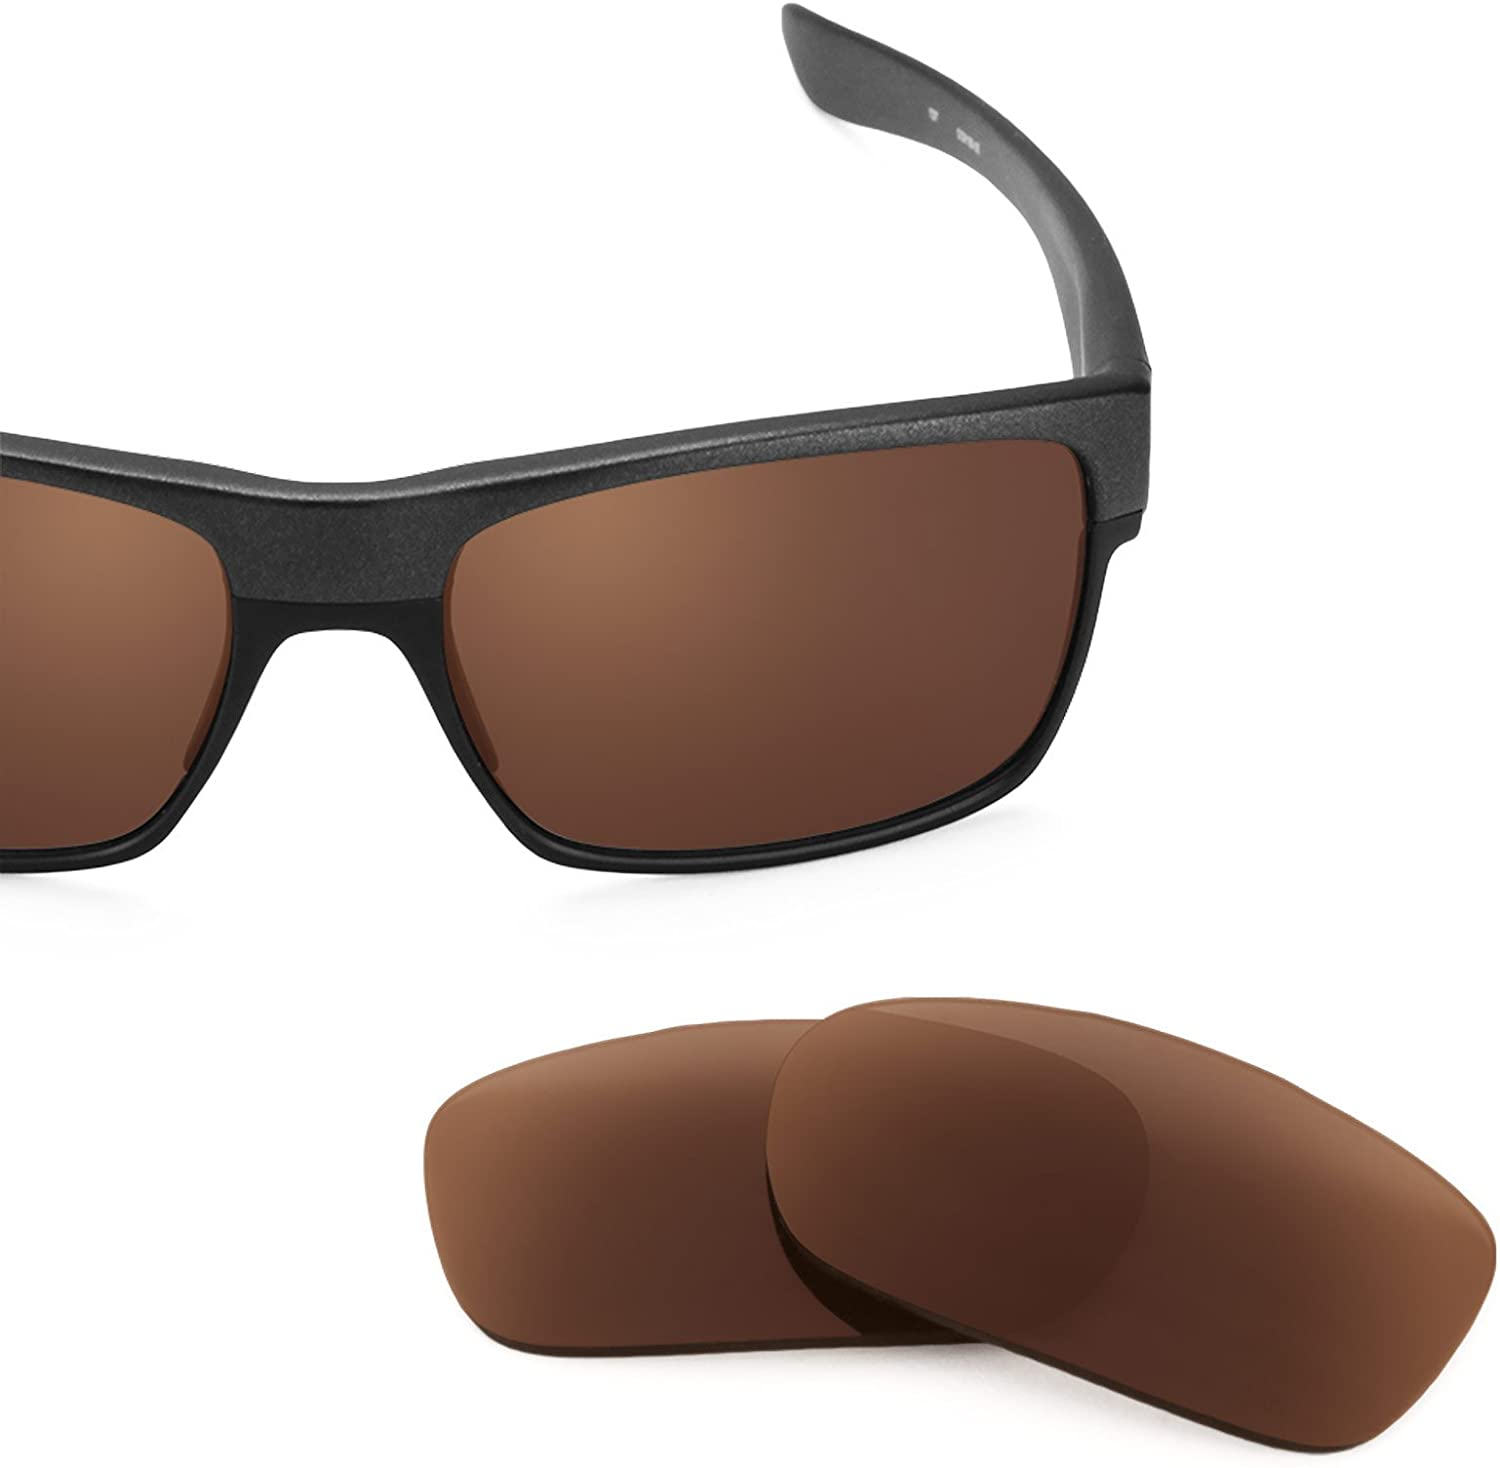 Revant Replacement Lenses for Oakley TwoFace - Compatible with Oakley TwoFace Sunglasses